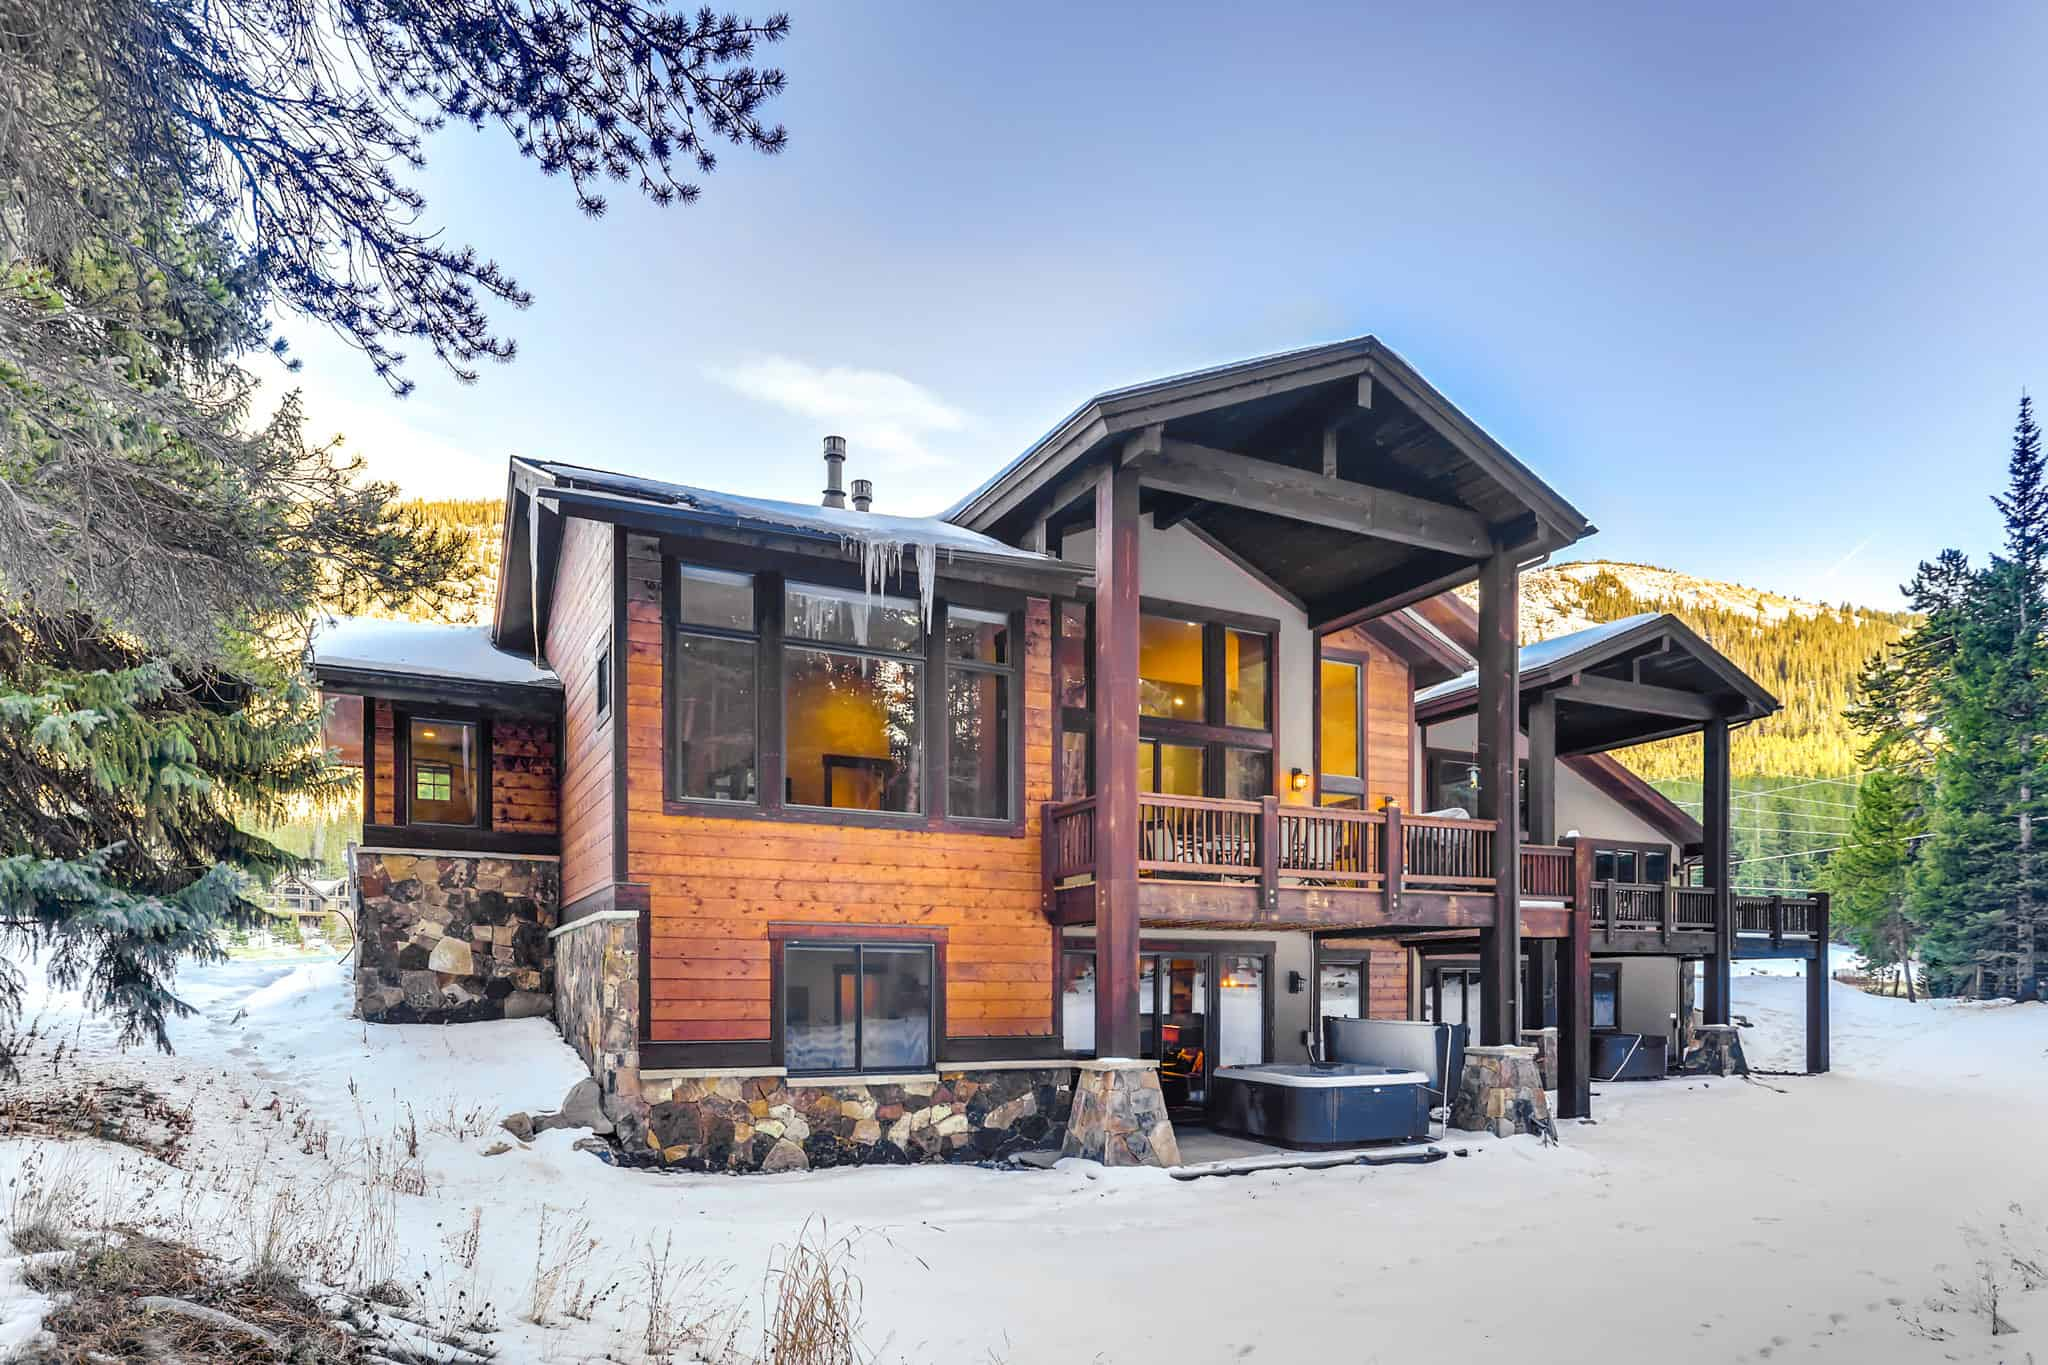 airbnb wedding venue Colorado a wooden cabin rental home with snow around and view of all the balconys